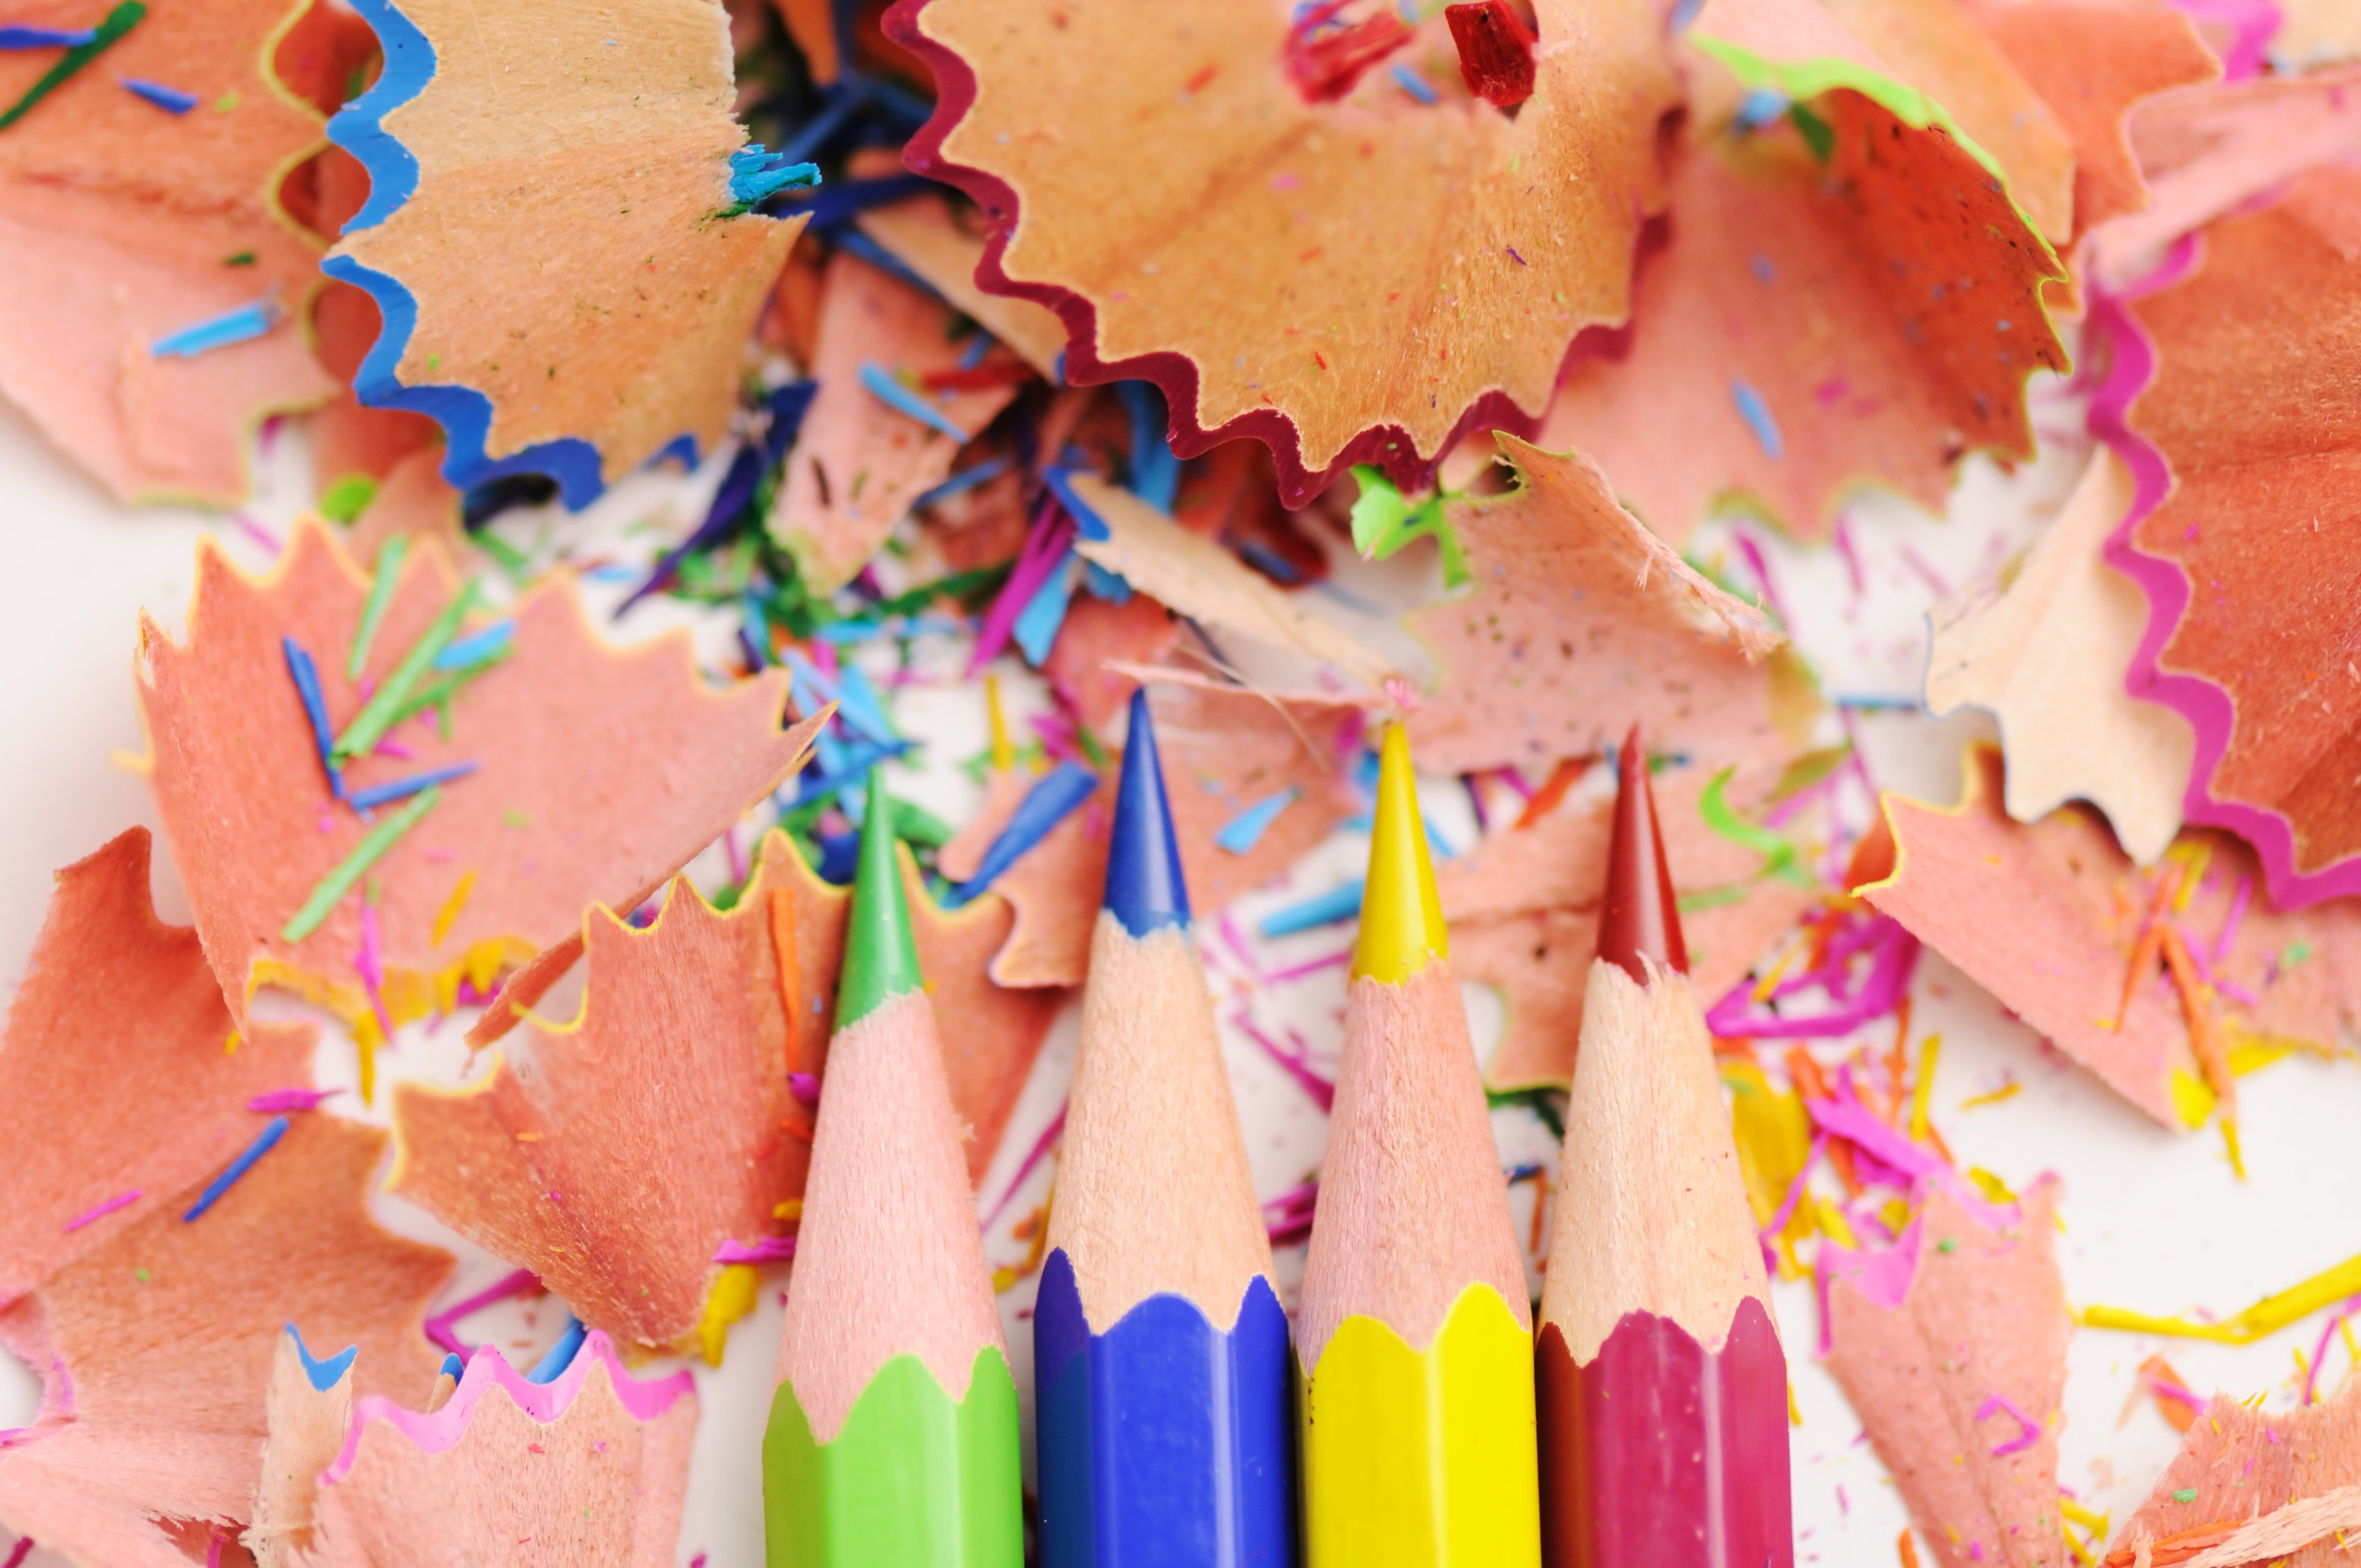 Colored Pencils in an Article About Grants for the Arts Including NEA Funding